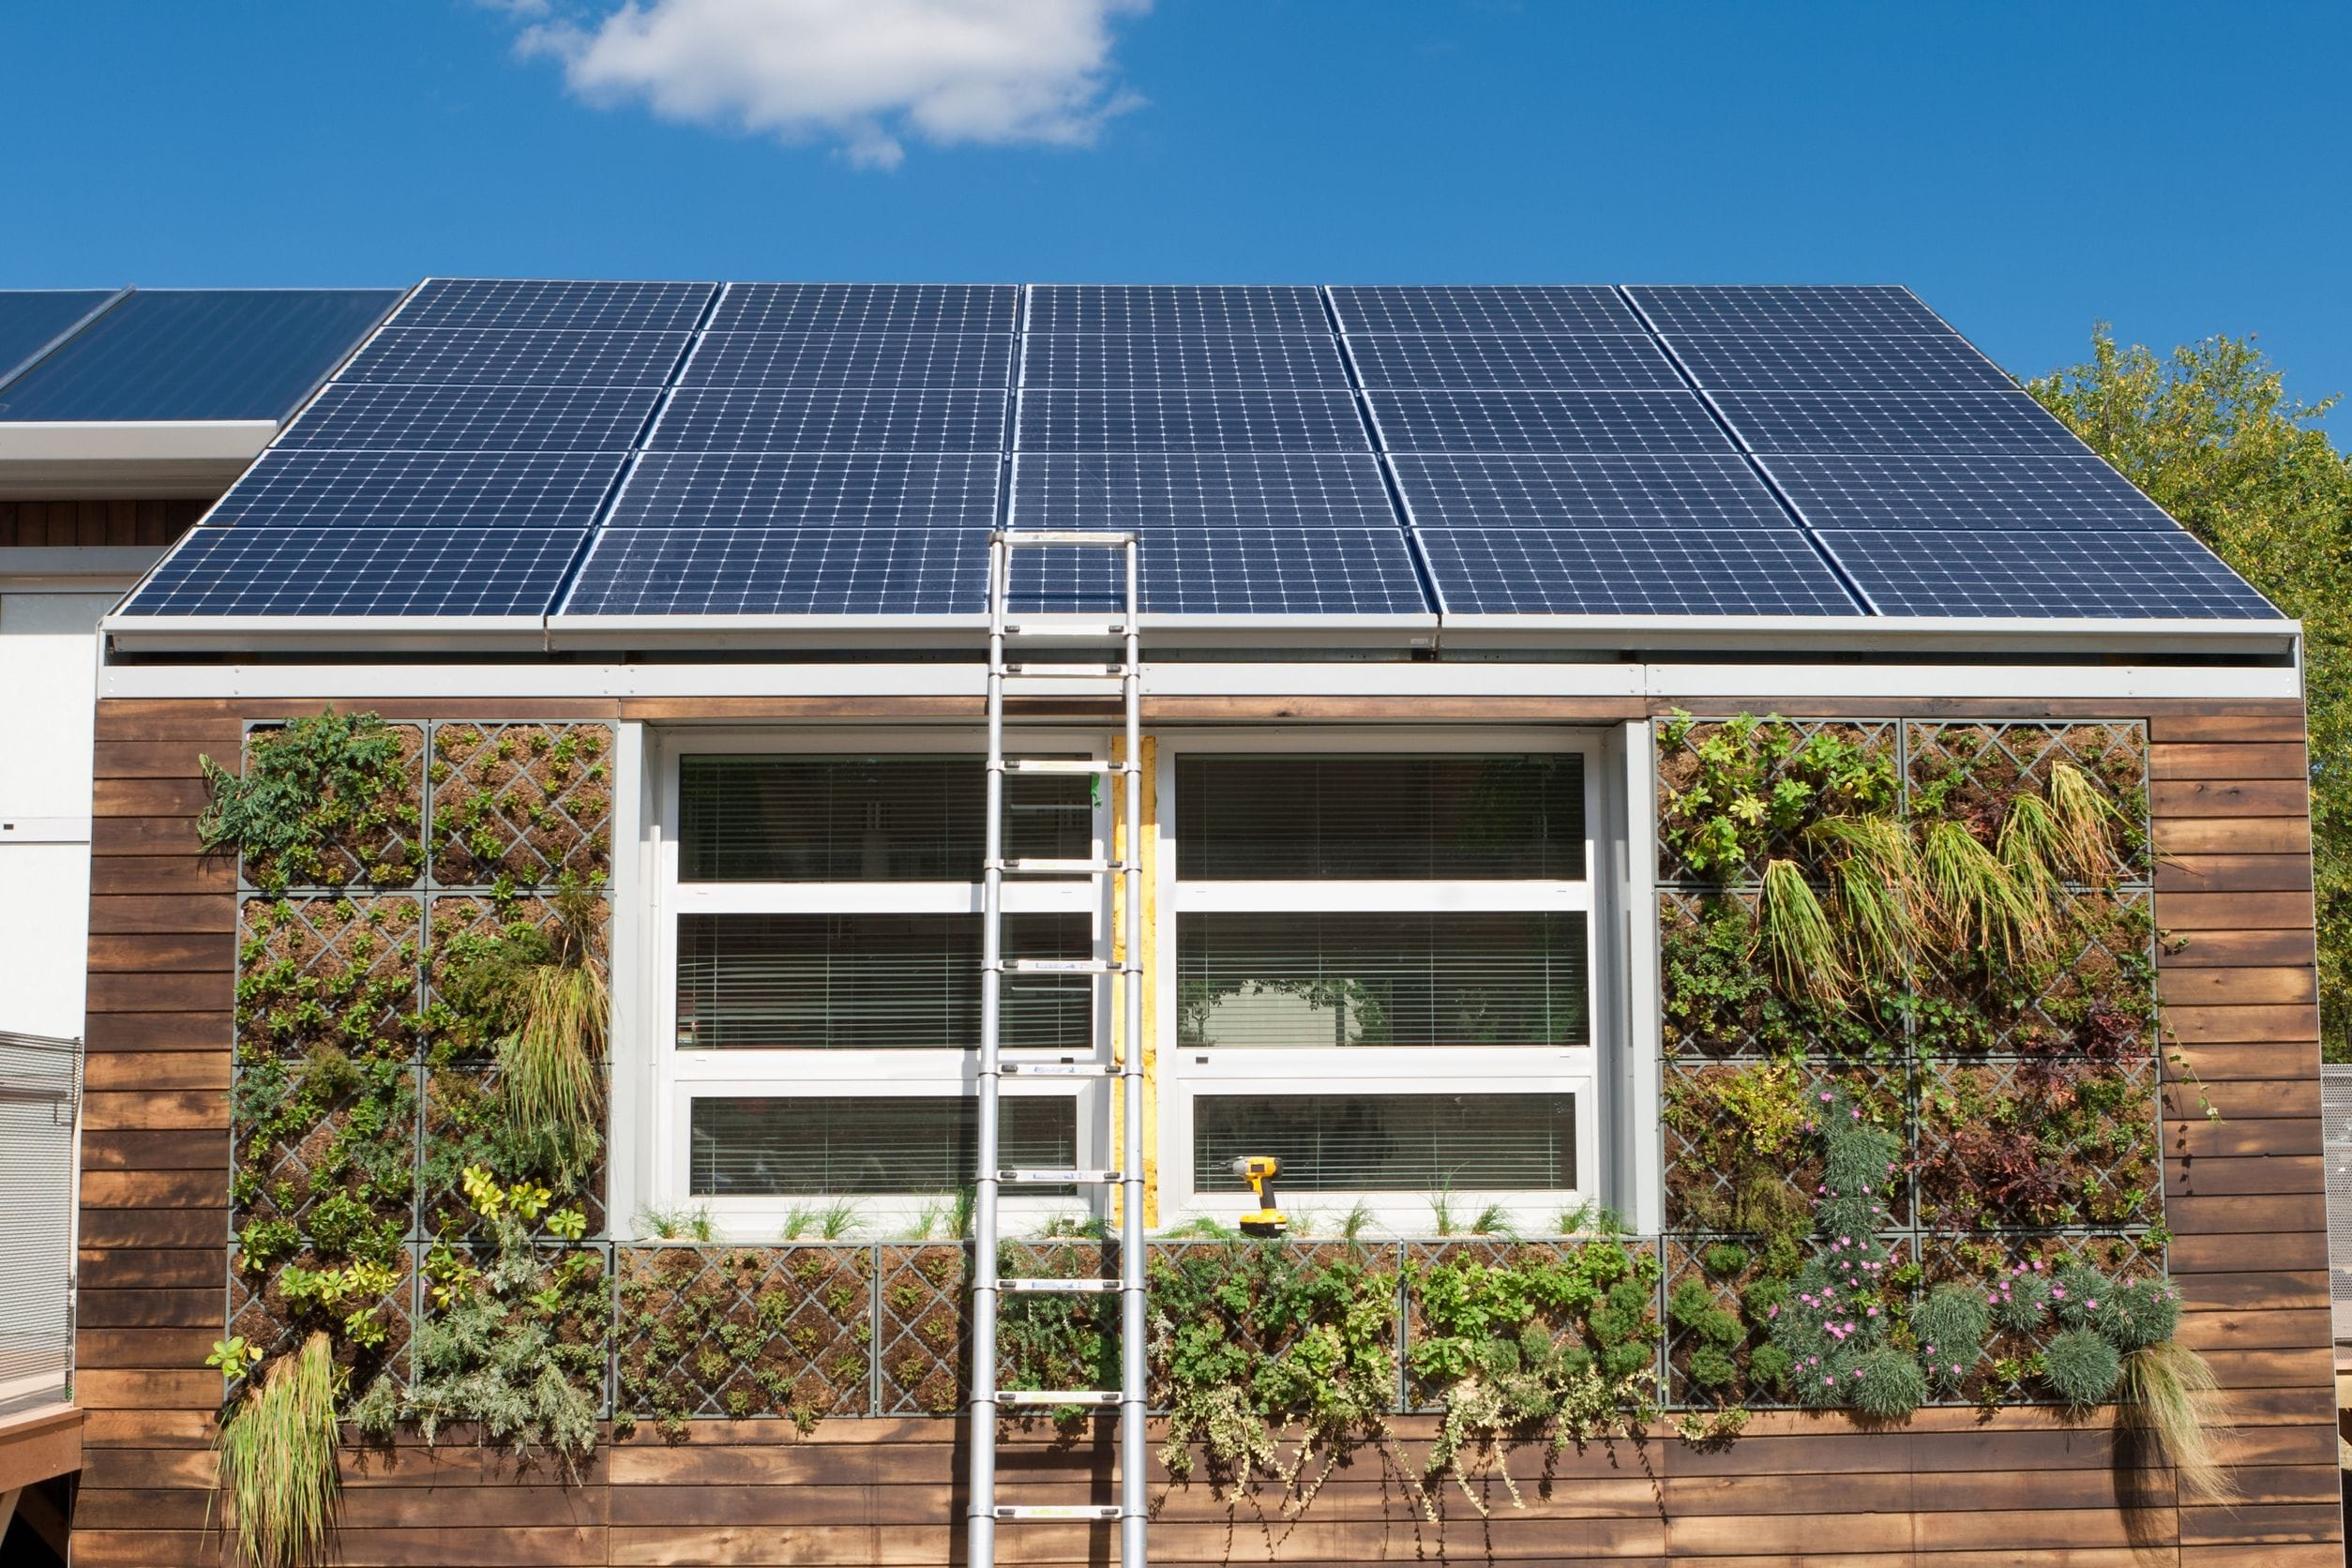 Clean, Renewable Energy At Home